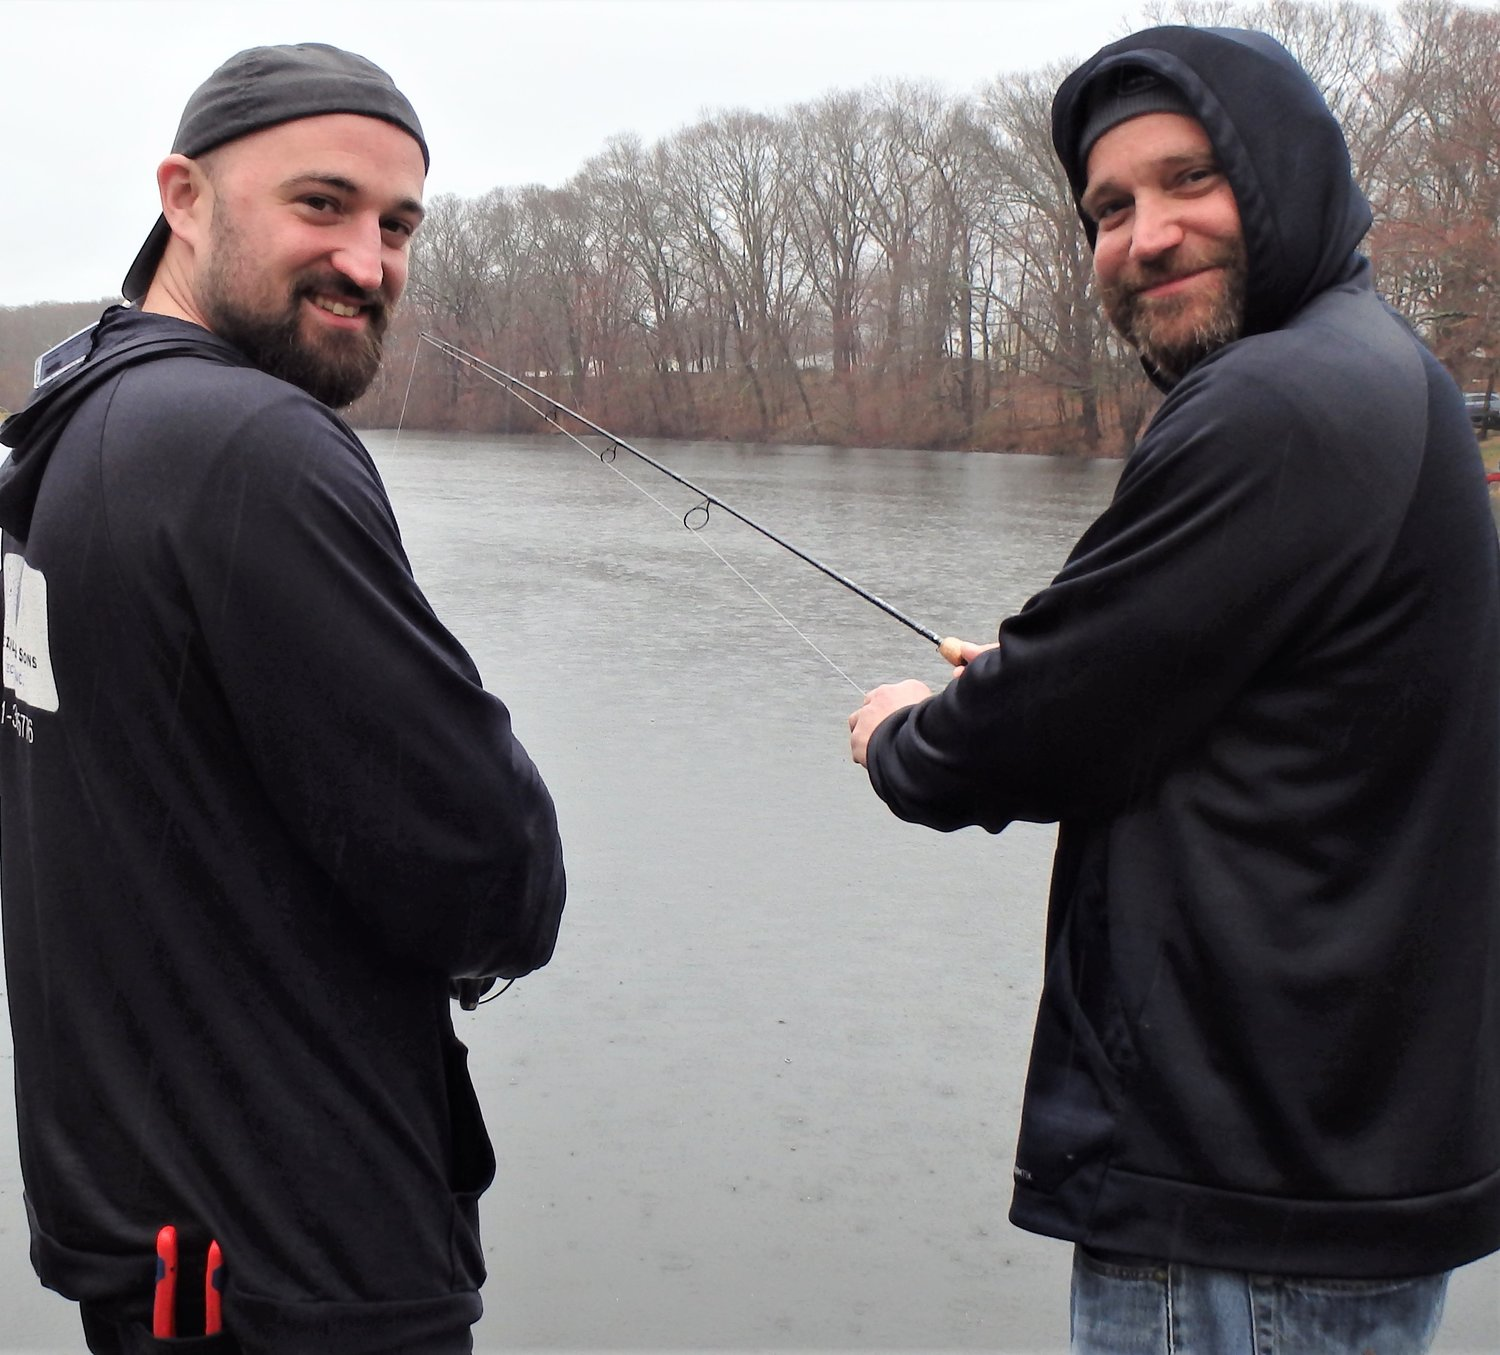 Family traditions: Brothers Nick and Ted Crevier of Riverside have been fishing on opening day (shown at Willet Avenue Pond) most of their lives.